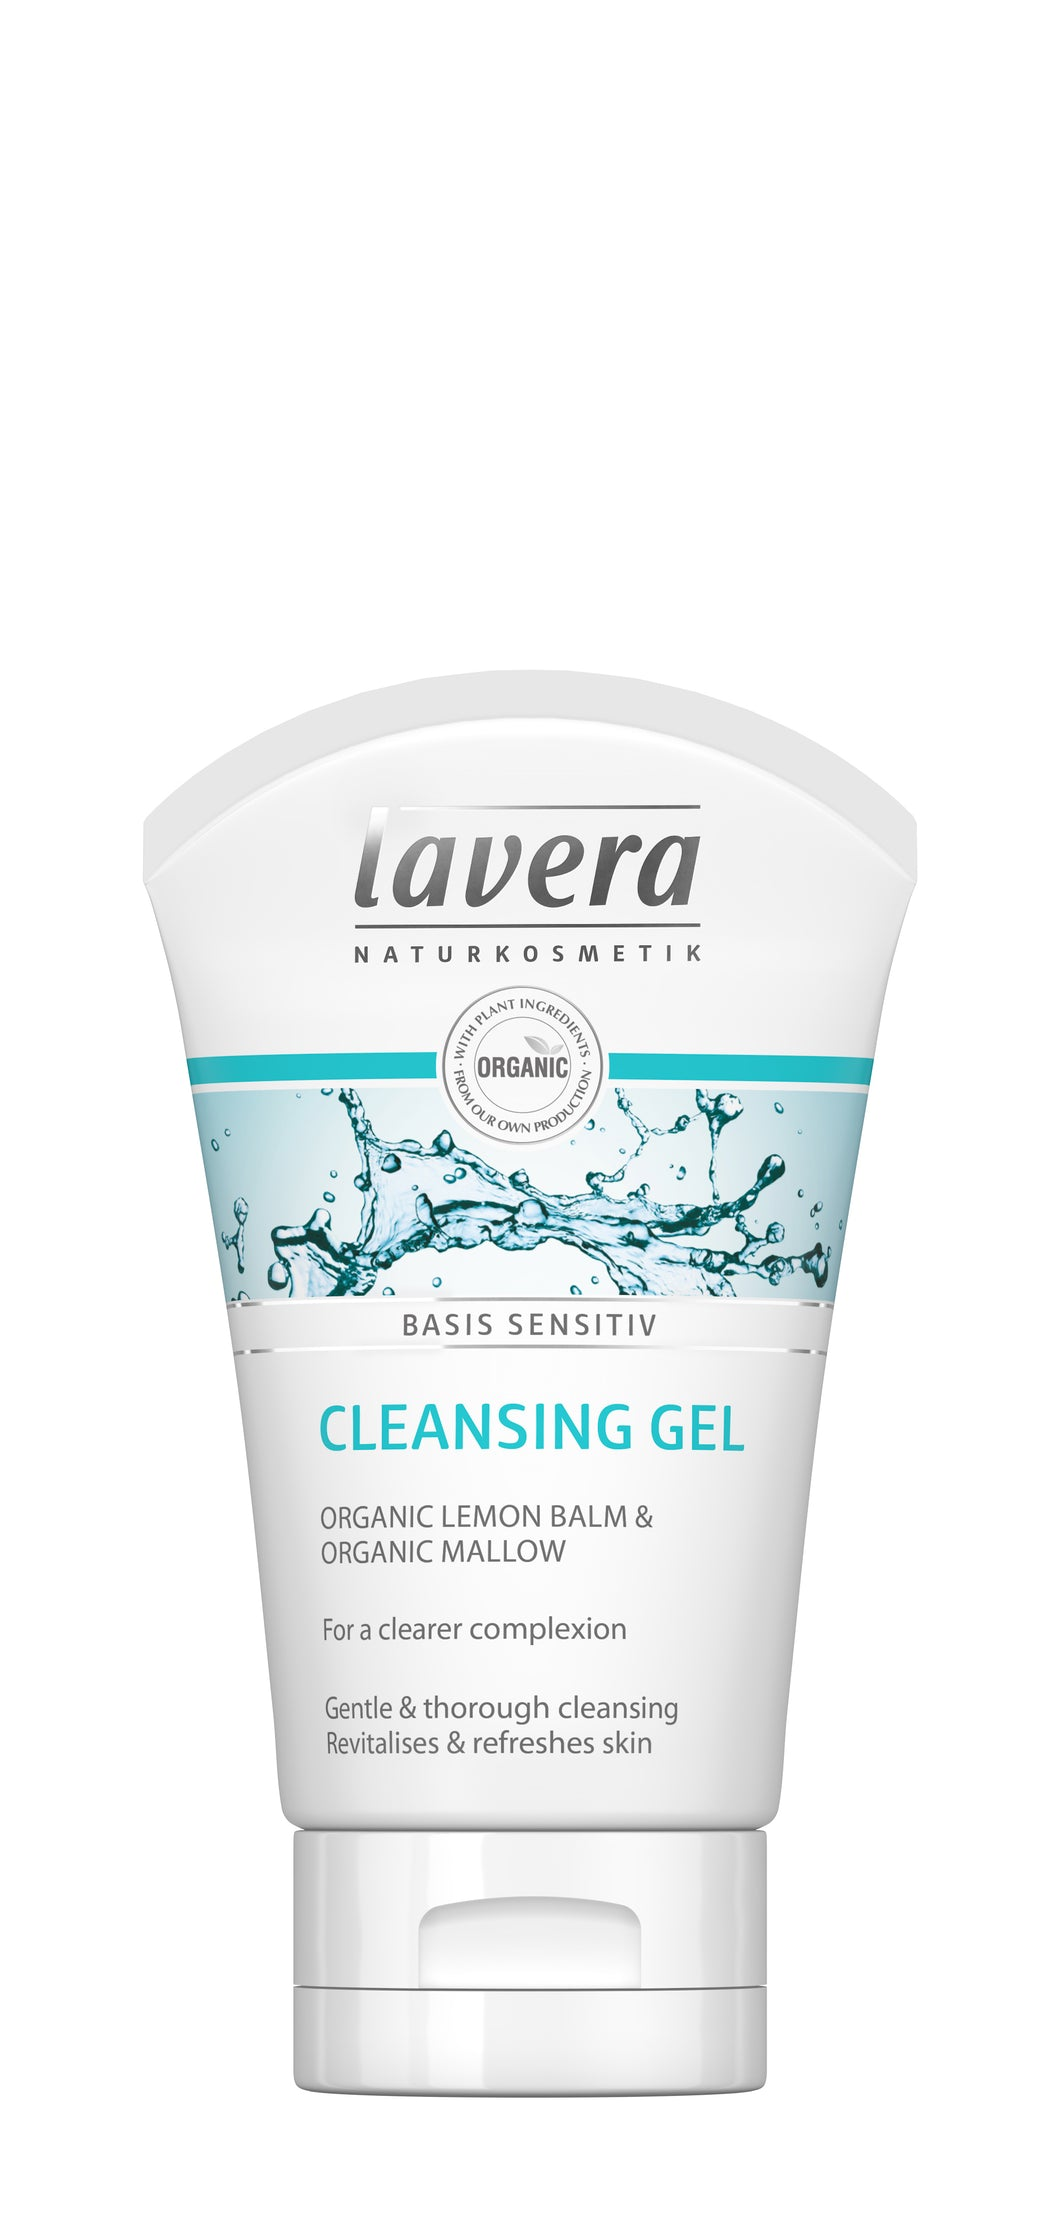 Lavera Cleansing Gel (125ml)